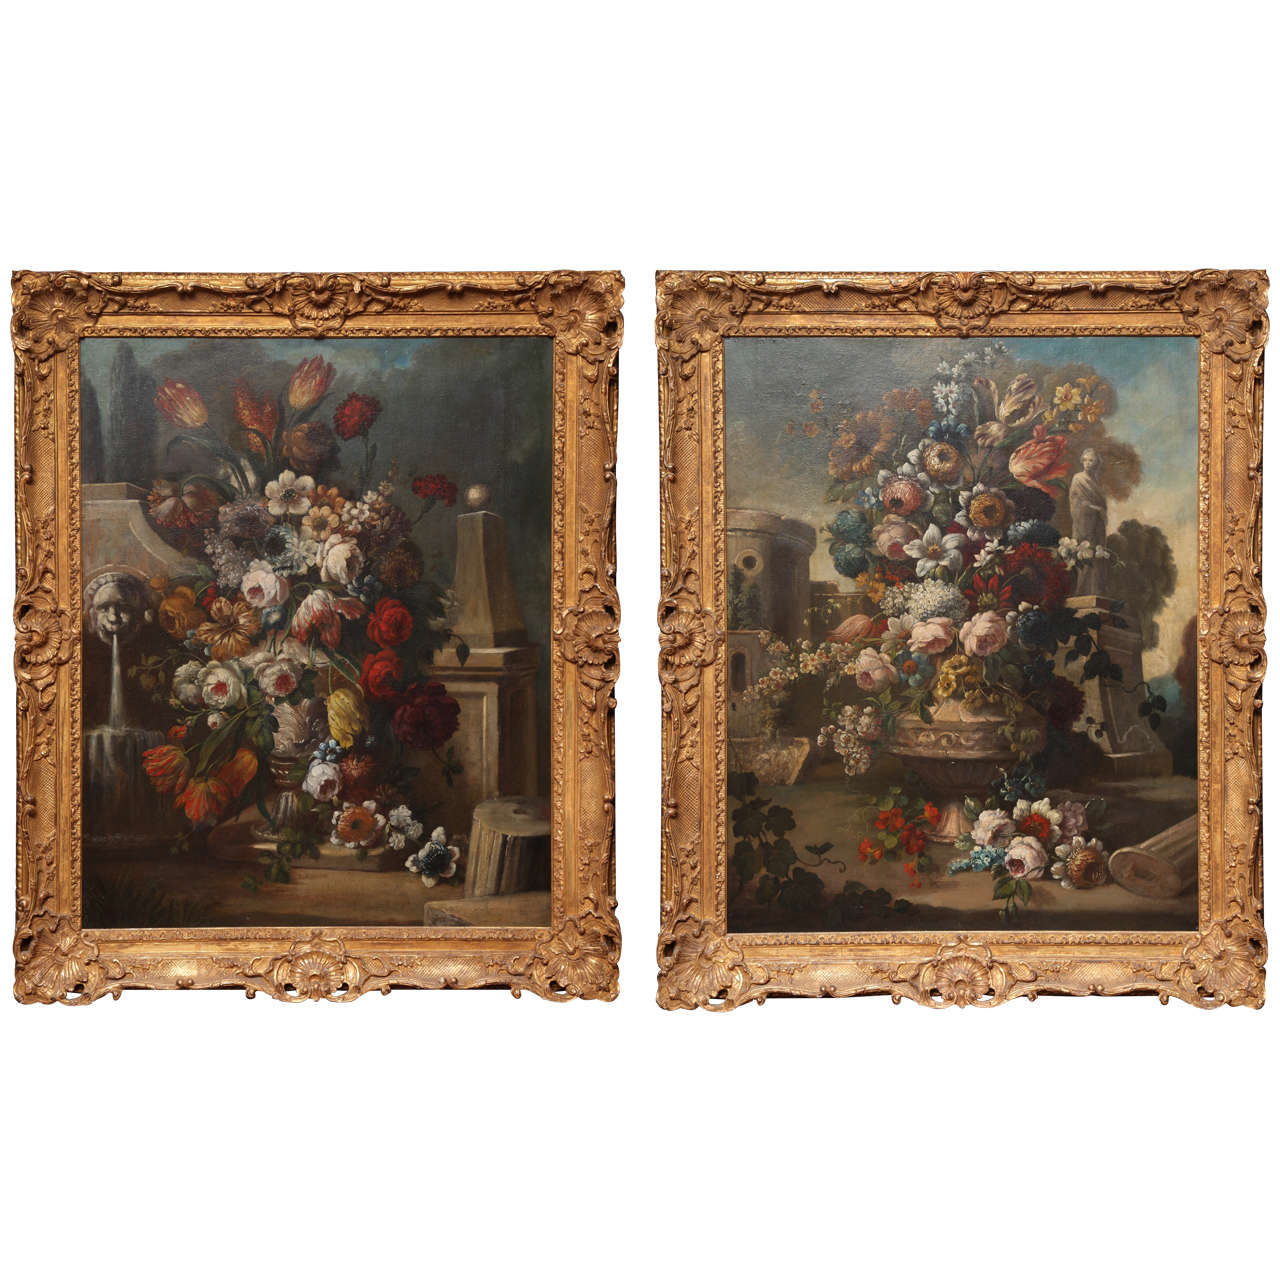 Pair of Still Life Paintings of Flowers, French, 18th Century, Original Frames